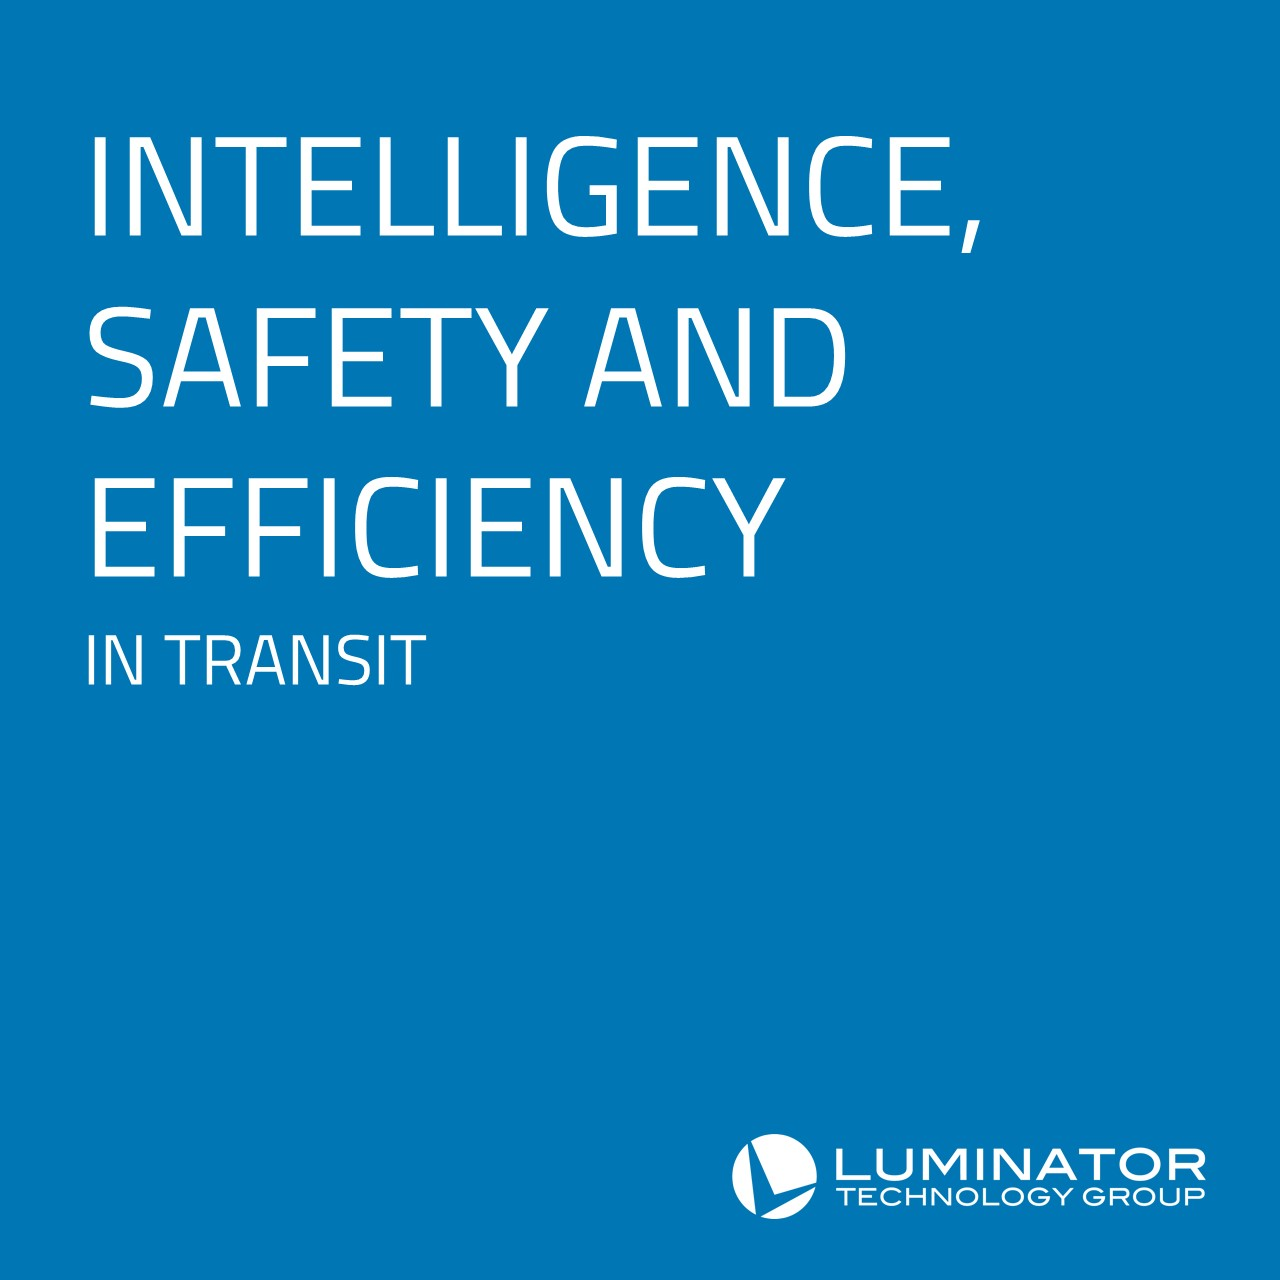 Luminator Technology Group to Speak at APTAtech Transportation Technology Conference on Infotainment and Machine Learning